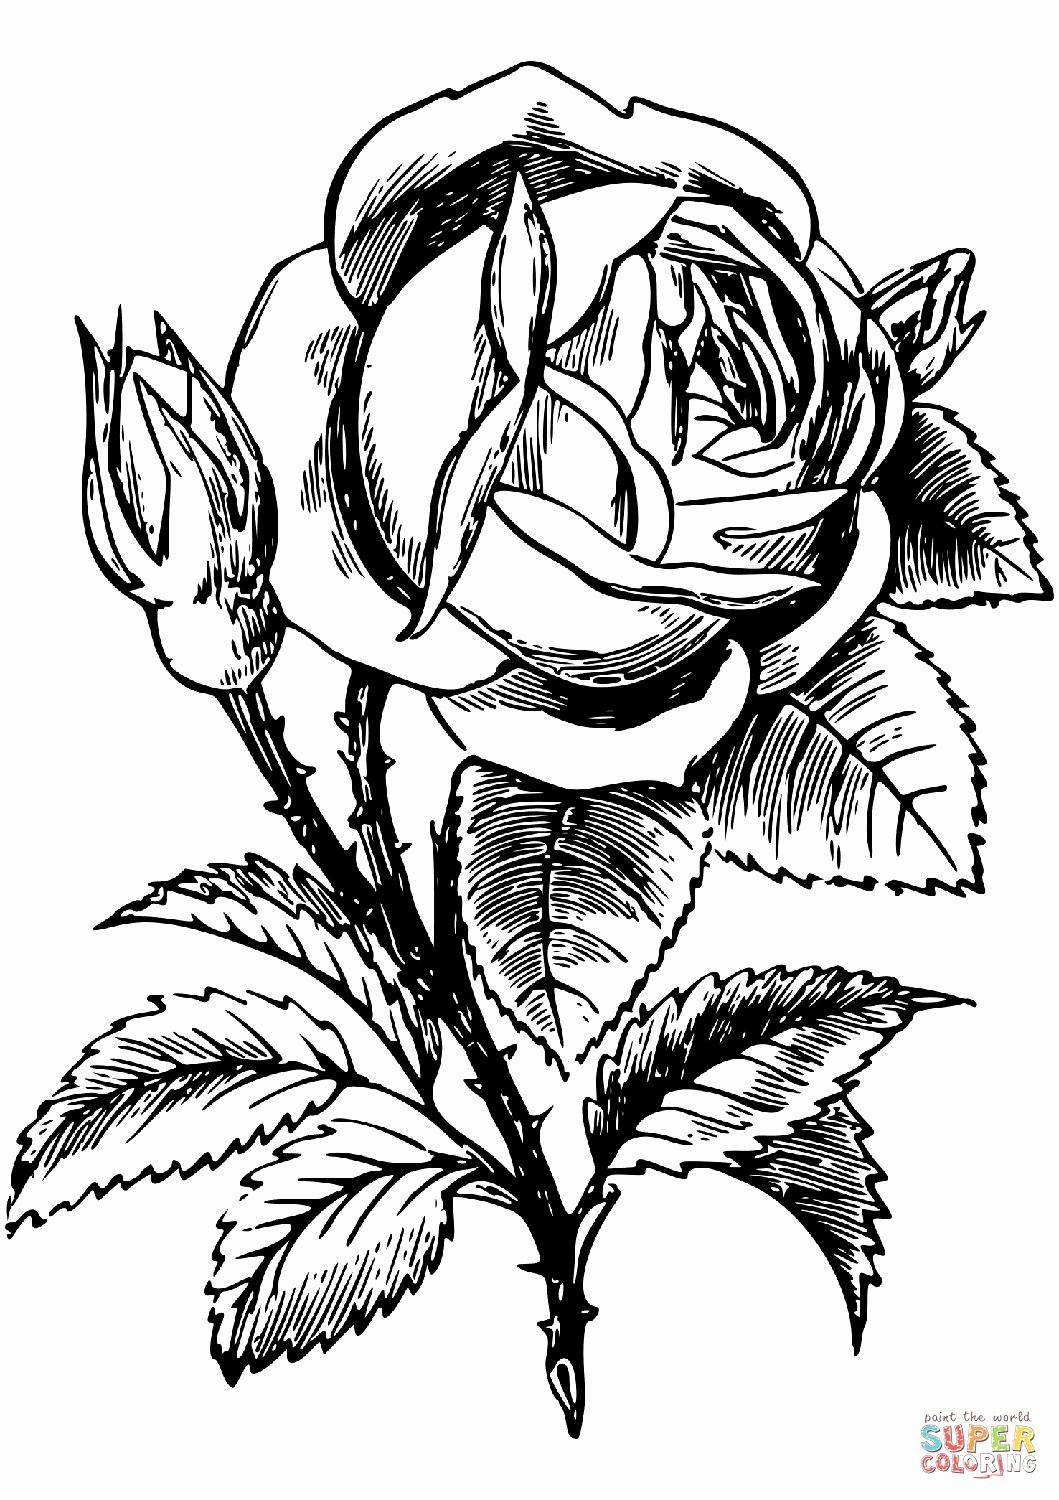 Roses Coloring Books New Rose Coloring Page Rose Coloring Pages Flower Coloring Pages Coloring Pages To Print